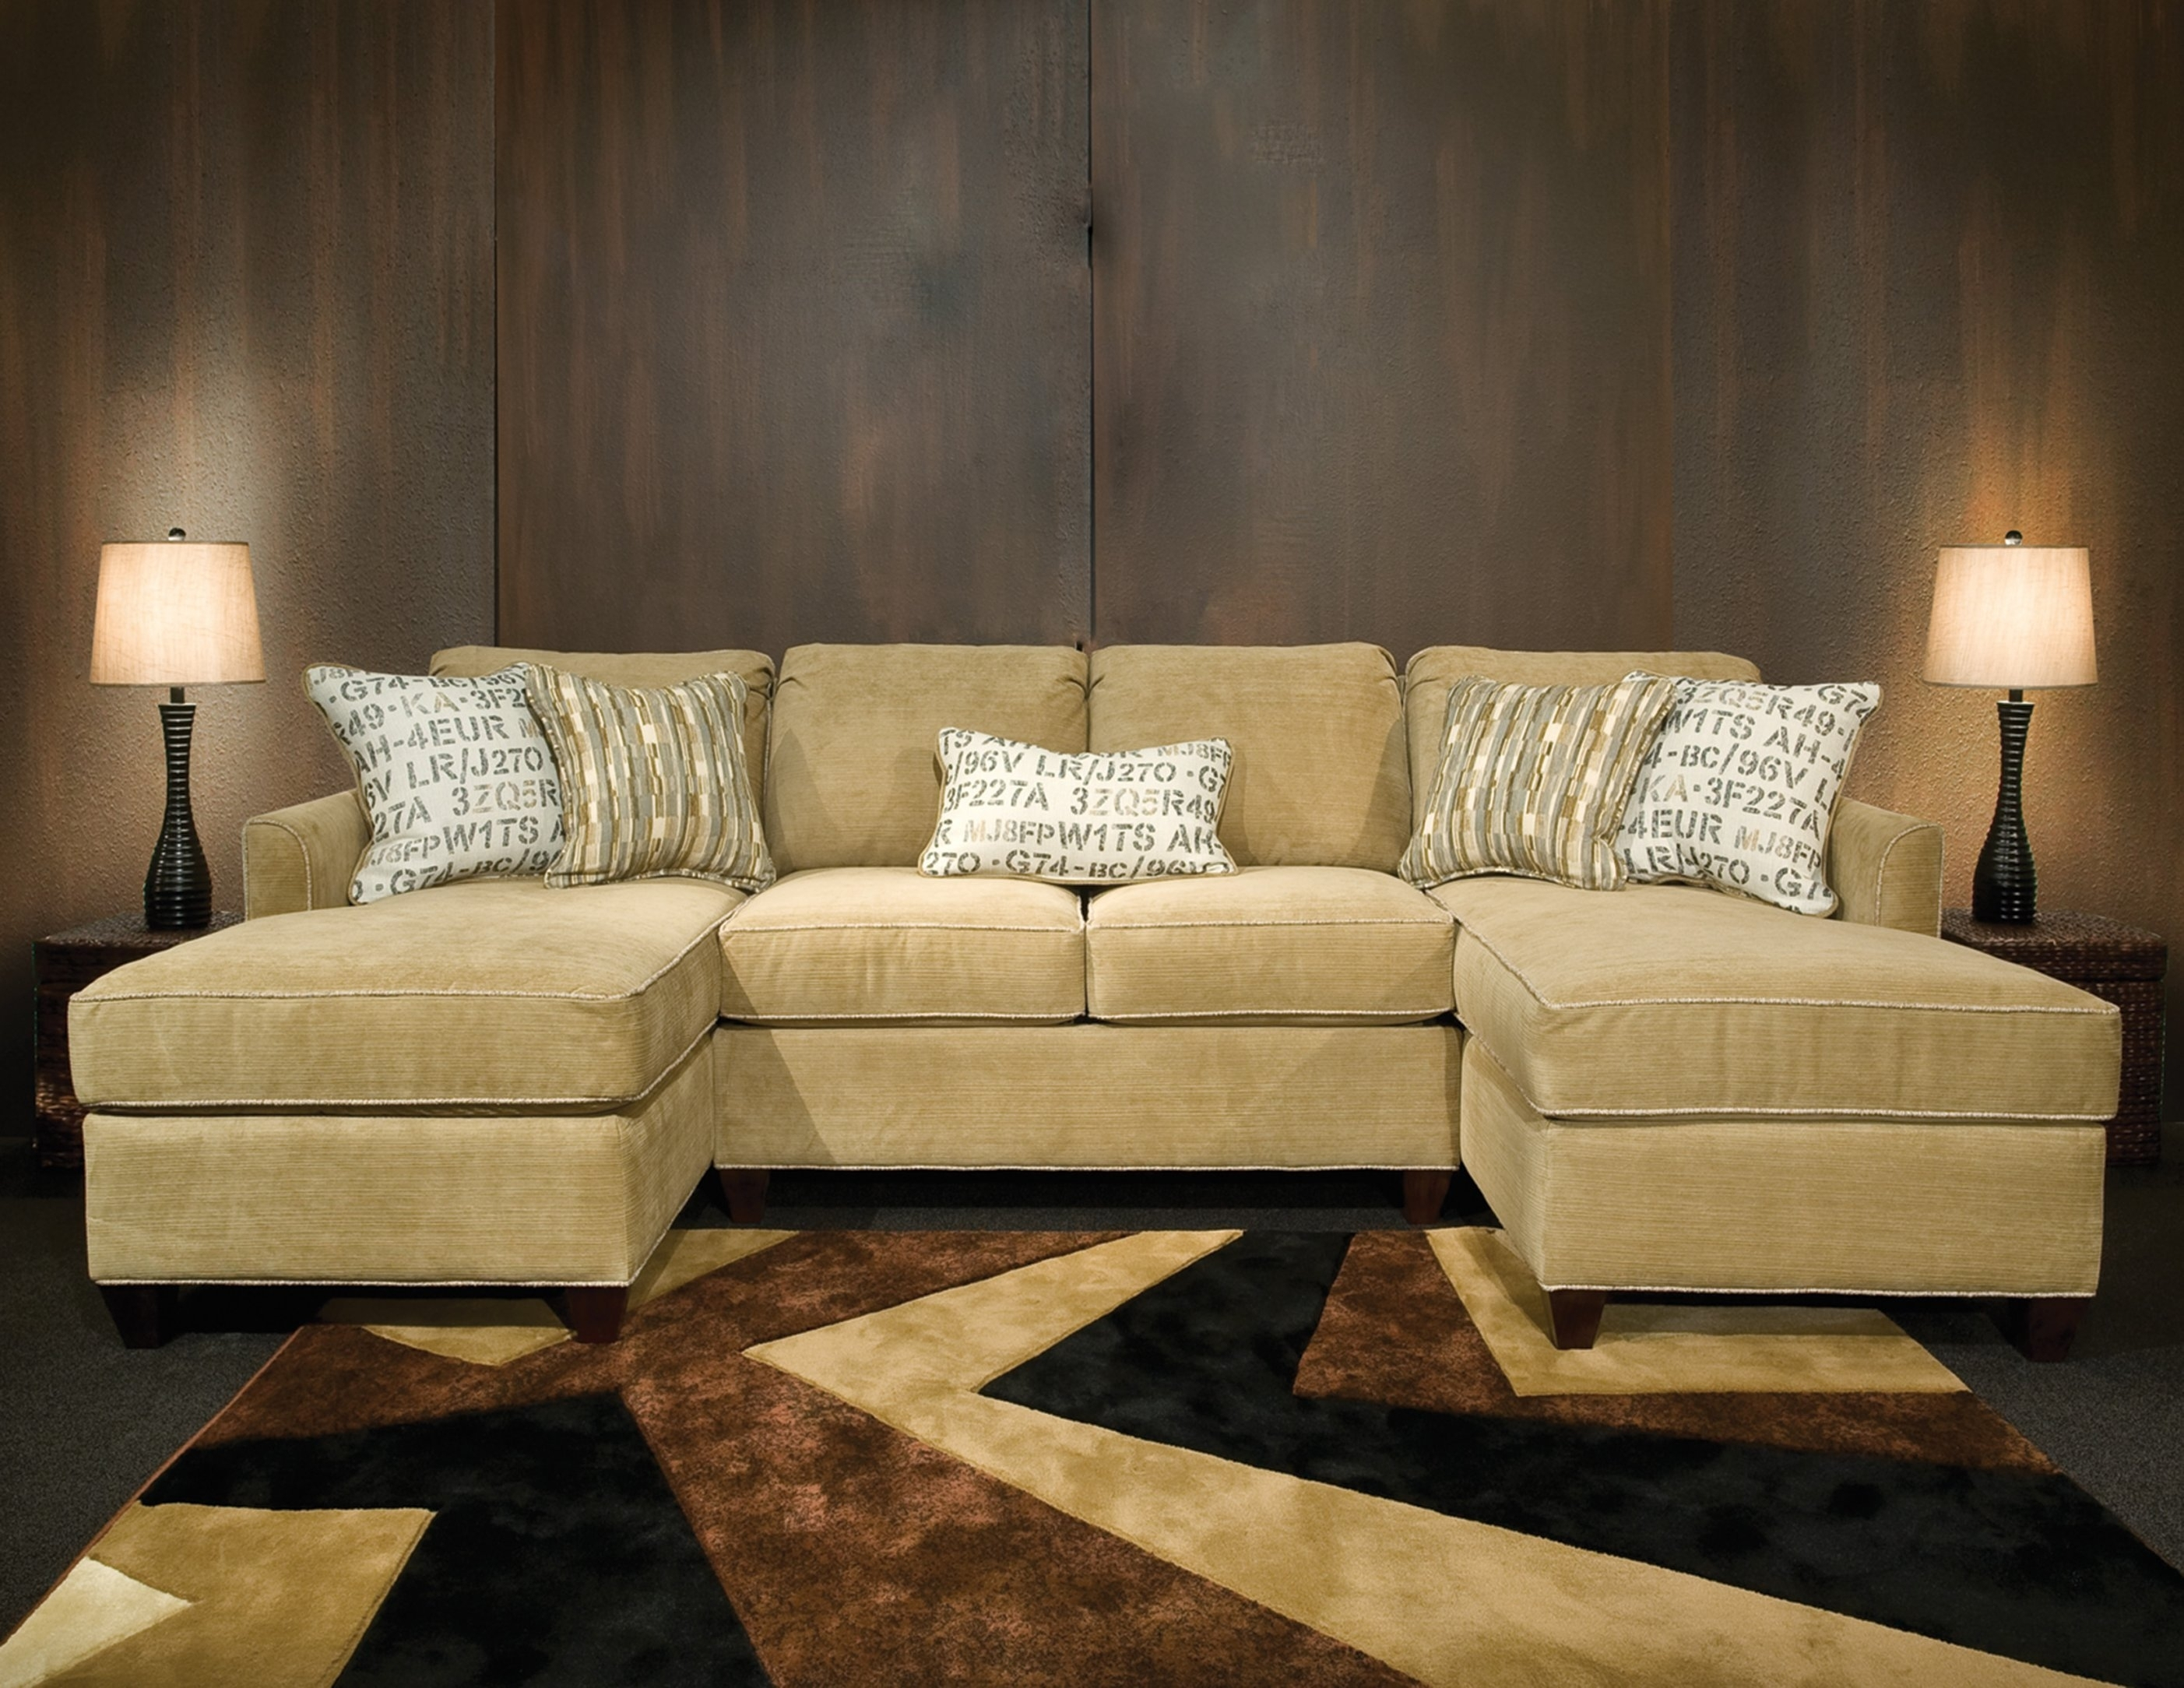 Uncategorized : Elegant Sofas Inside Lovely Sectional Sofa Design Intended For Elegant Sectional Sofas (Photo 10 of 10)